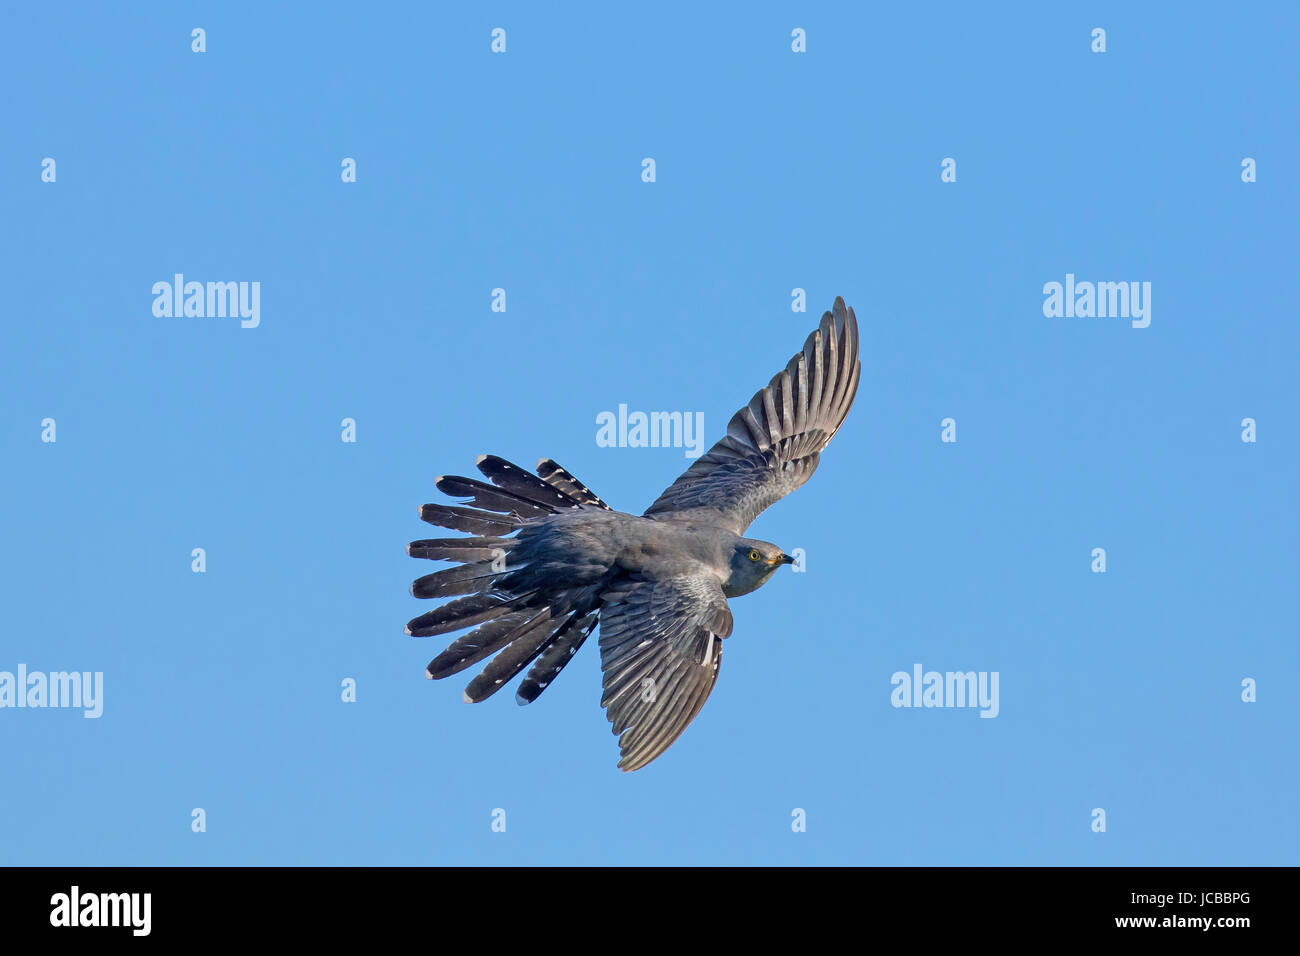 Common cuckoo (Cuculus canorus) male in flight with spread tail feathers against blue sky - Stock Image